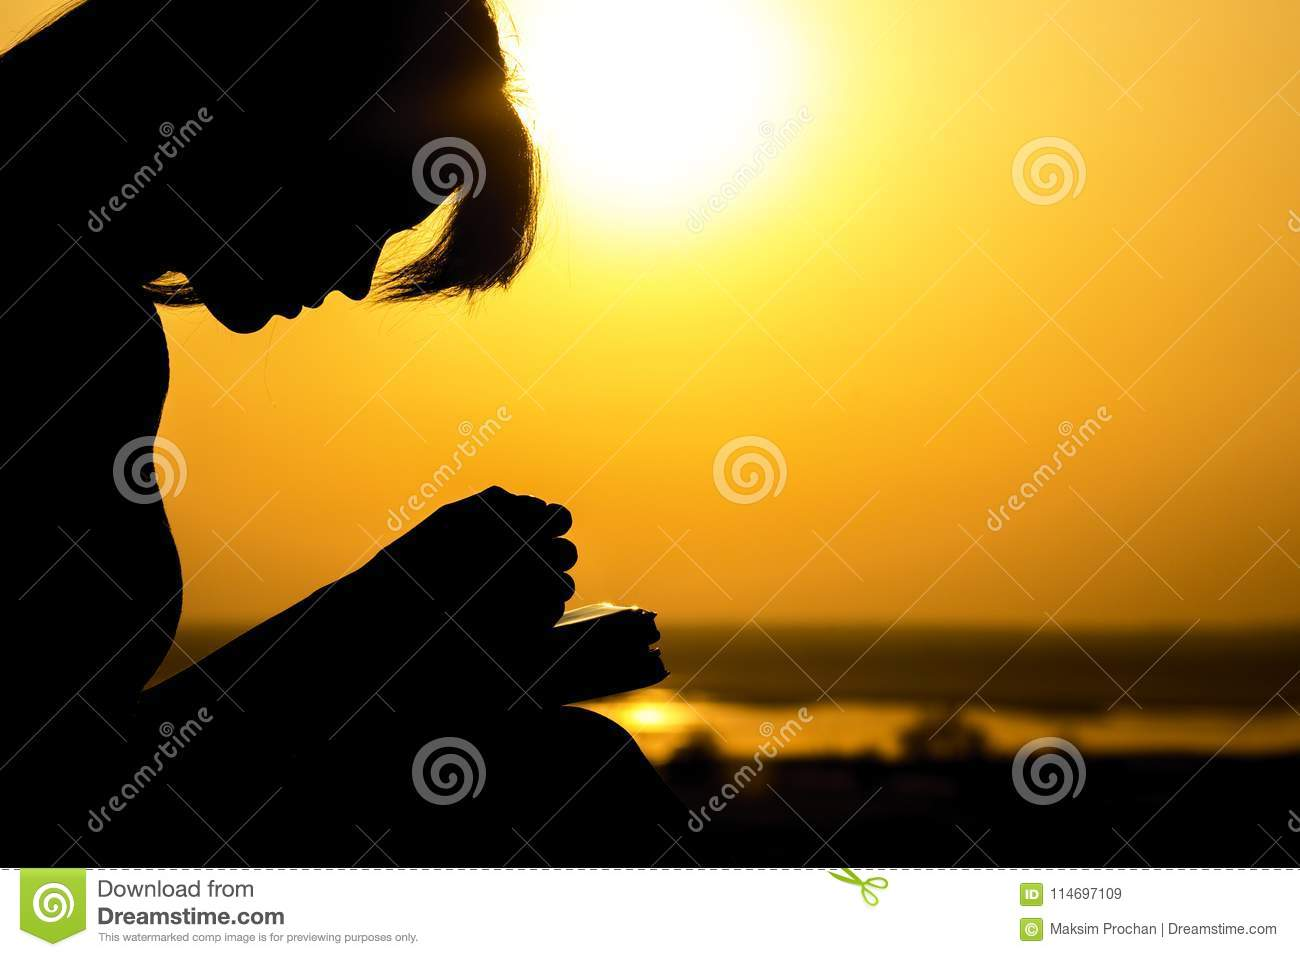 Silhouette of the hands of woman praying to God in the nature witth the Bible at sunset, the concept of religion and spirituality